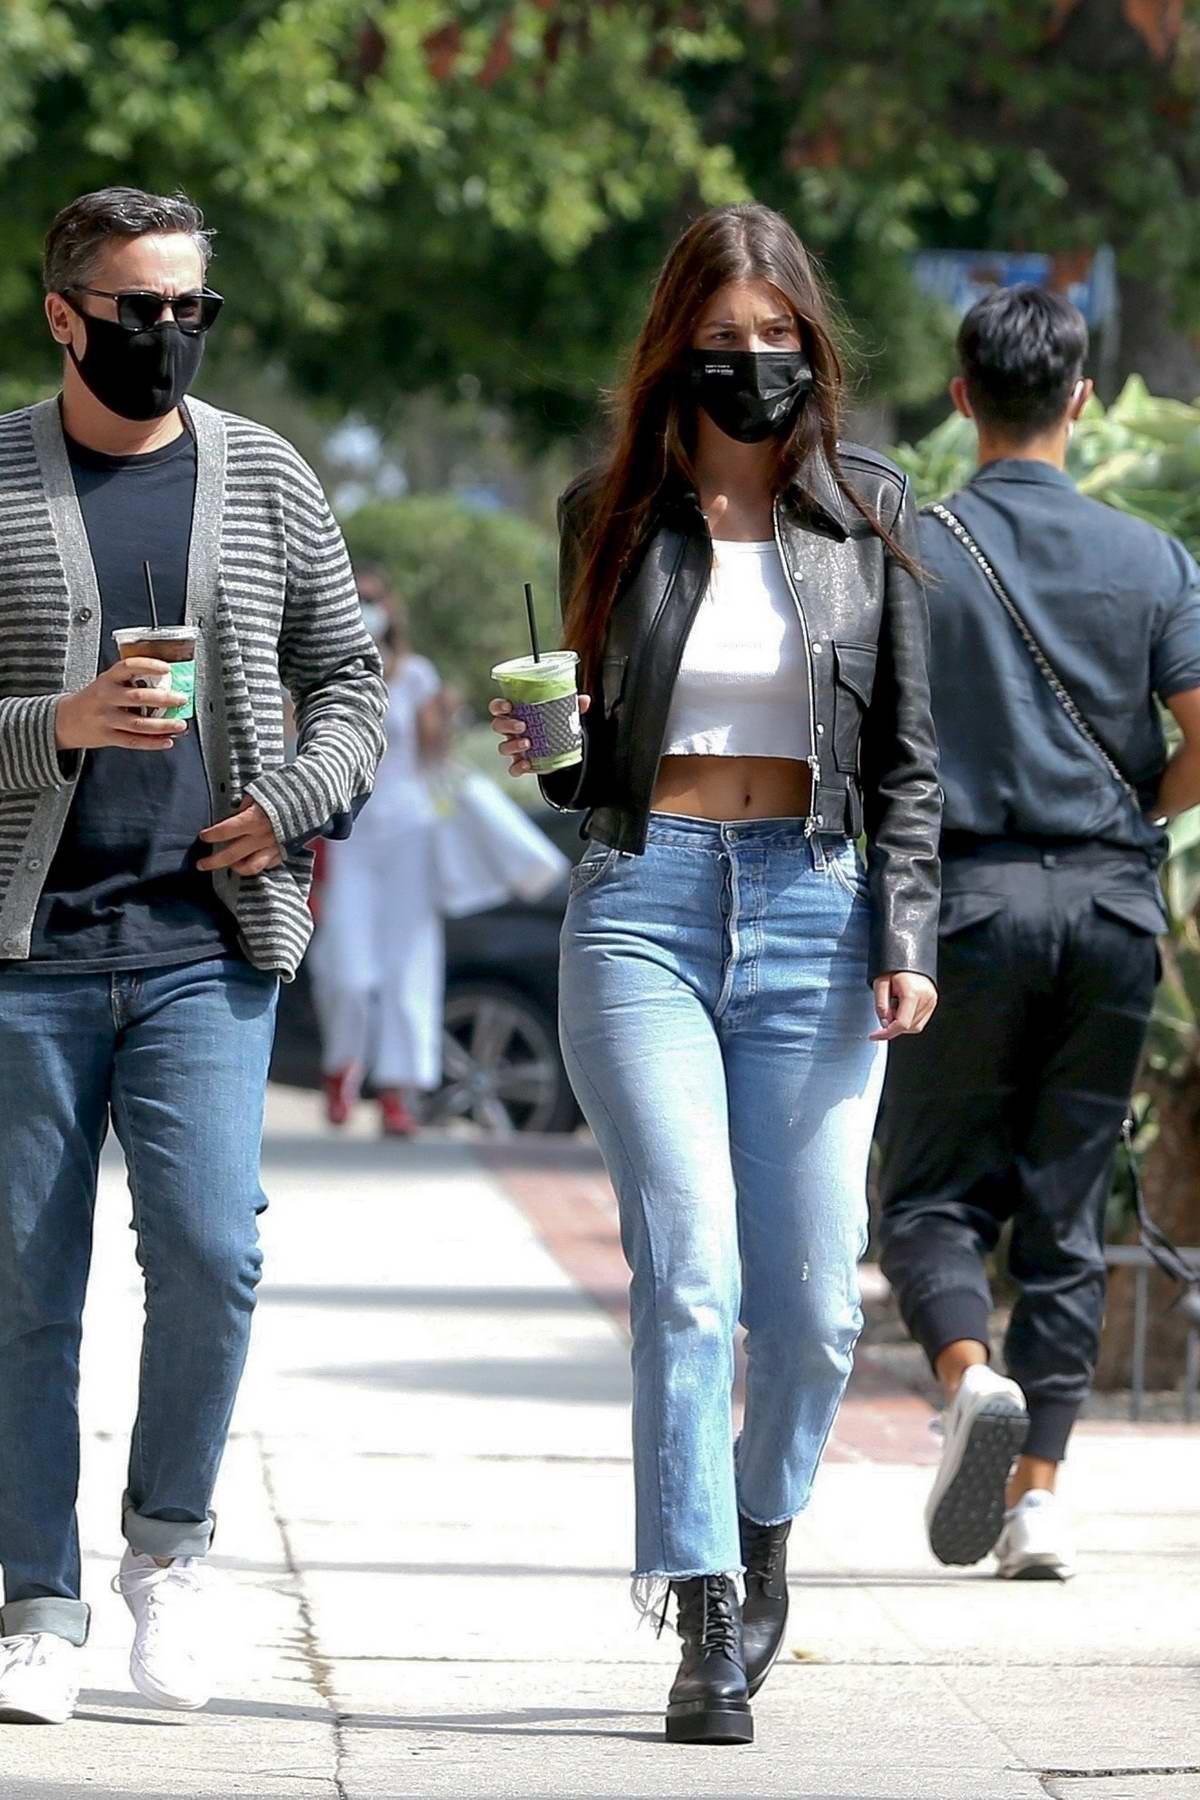 Camila Morrone flashes her midriff in a crop top while out shopping on Melrose place in West Hollywood, California